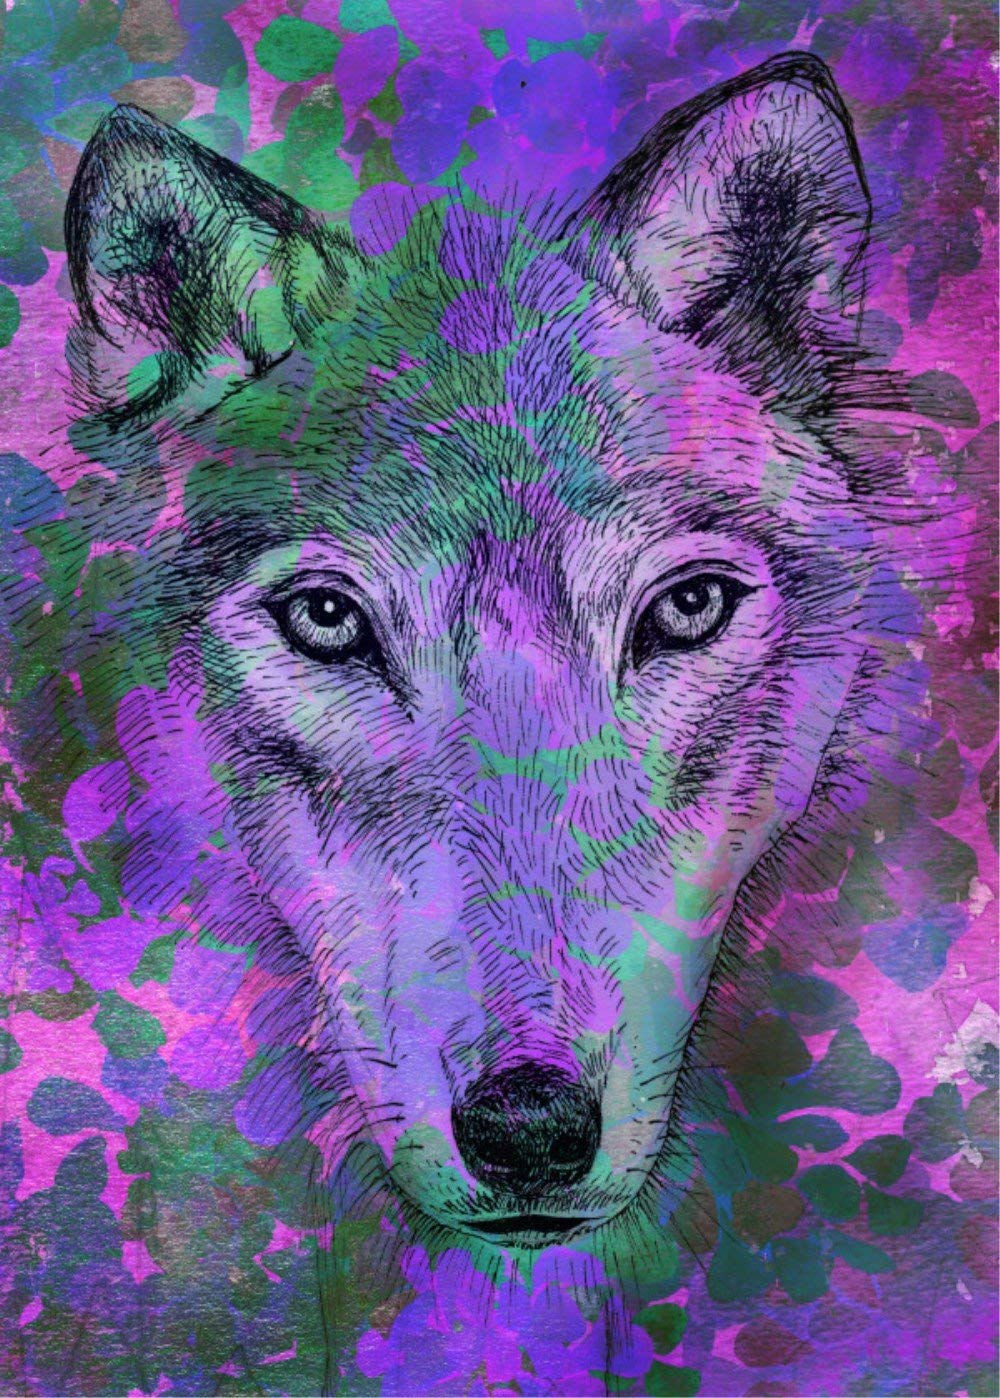 TianMai Hot New DIY 5D Diamond Painting Kits Diamond Embroidery Painting Pasted Paint By Number Kit Stitch Craft Kit Home Decor Wall Sticker - Color Wolf, 30x40cm